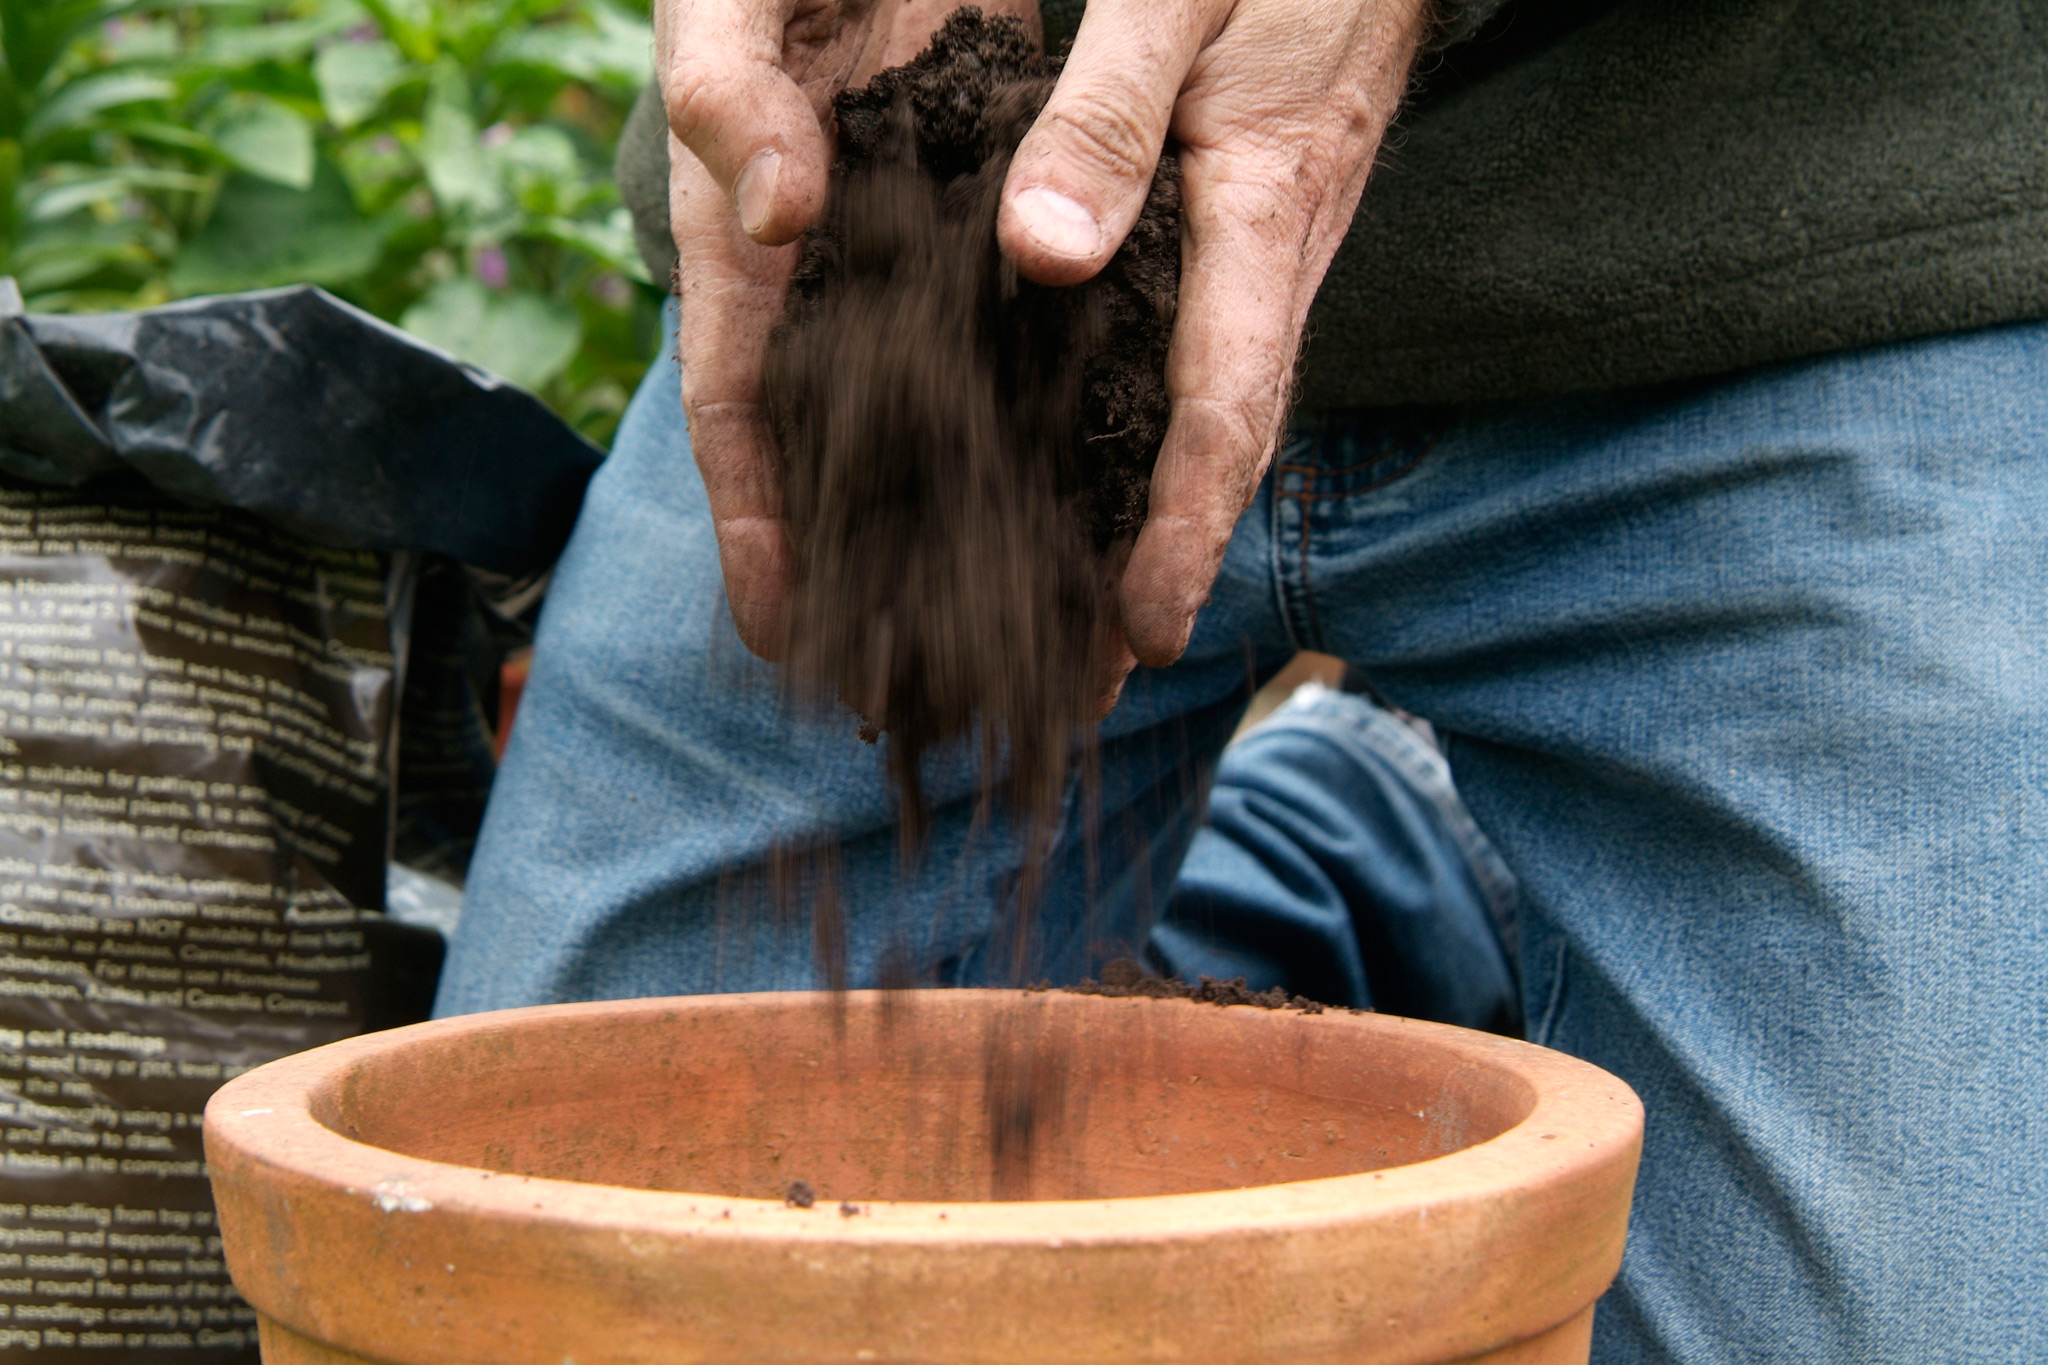 filling-a-pot-with-compost-3